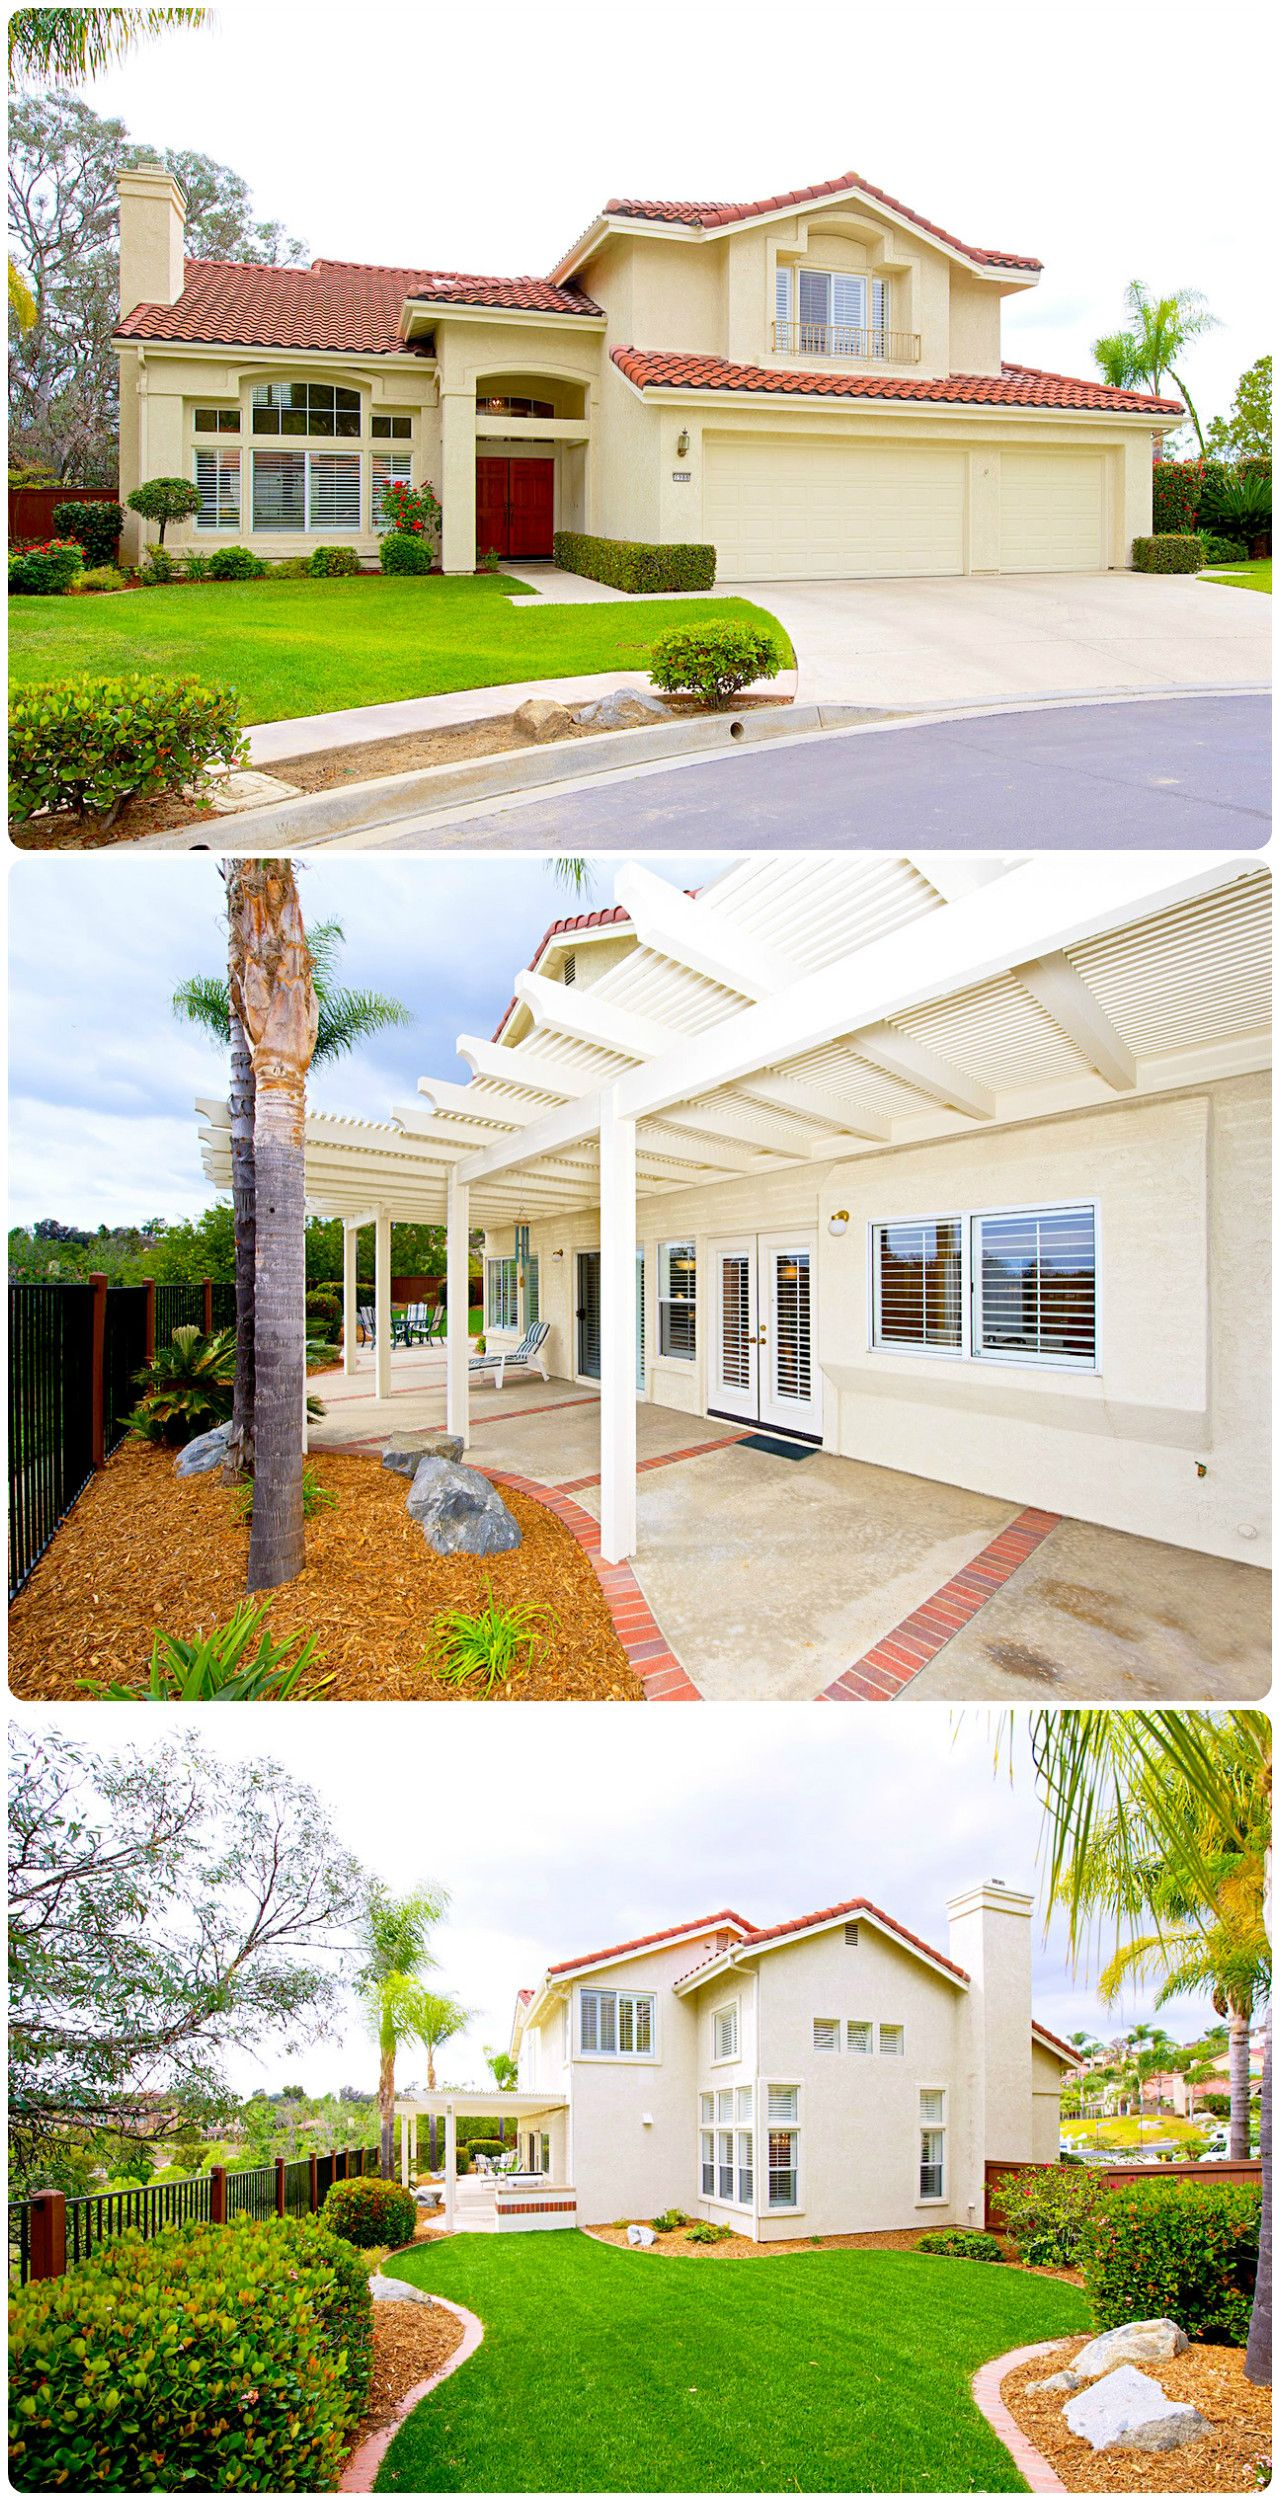 Gorgeous home that features 5 bedrooms, 3 bathrooms, beautiful kitchen and 2 separate yards.  http://www.teamaguilar.com/san-diego-ca-homes/1988-wisteria-ct-el-cajon-ca-92019-2000137904/